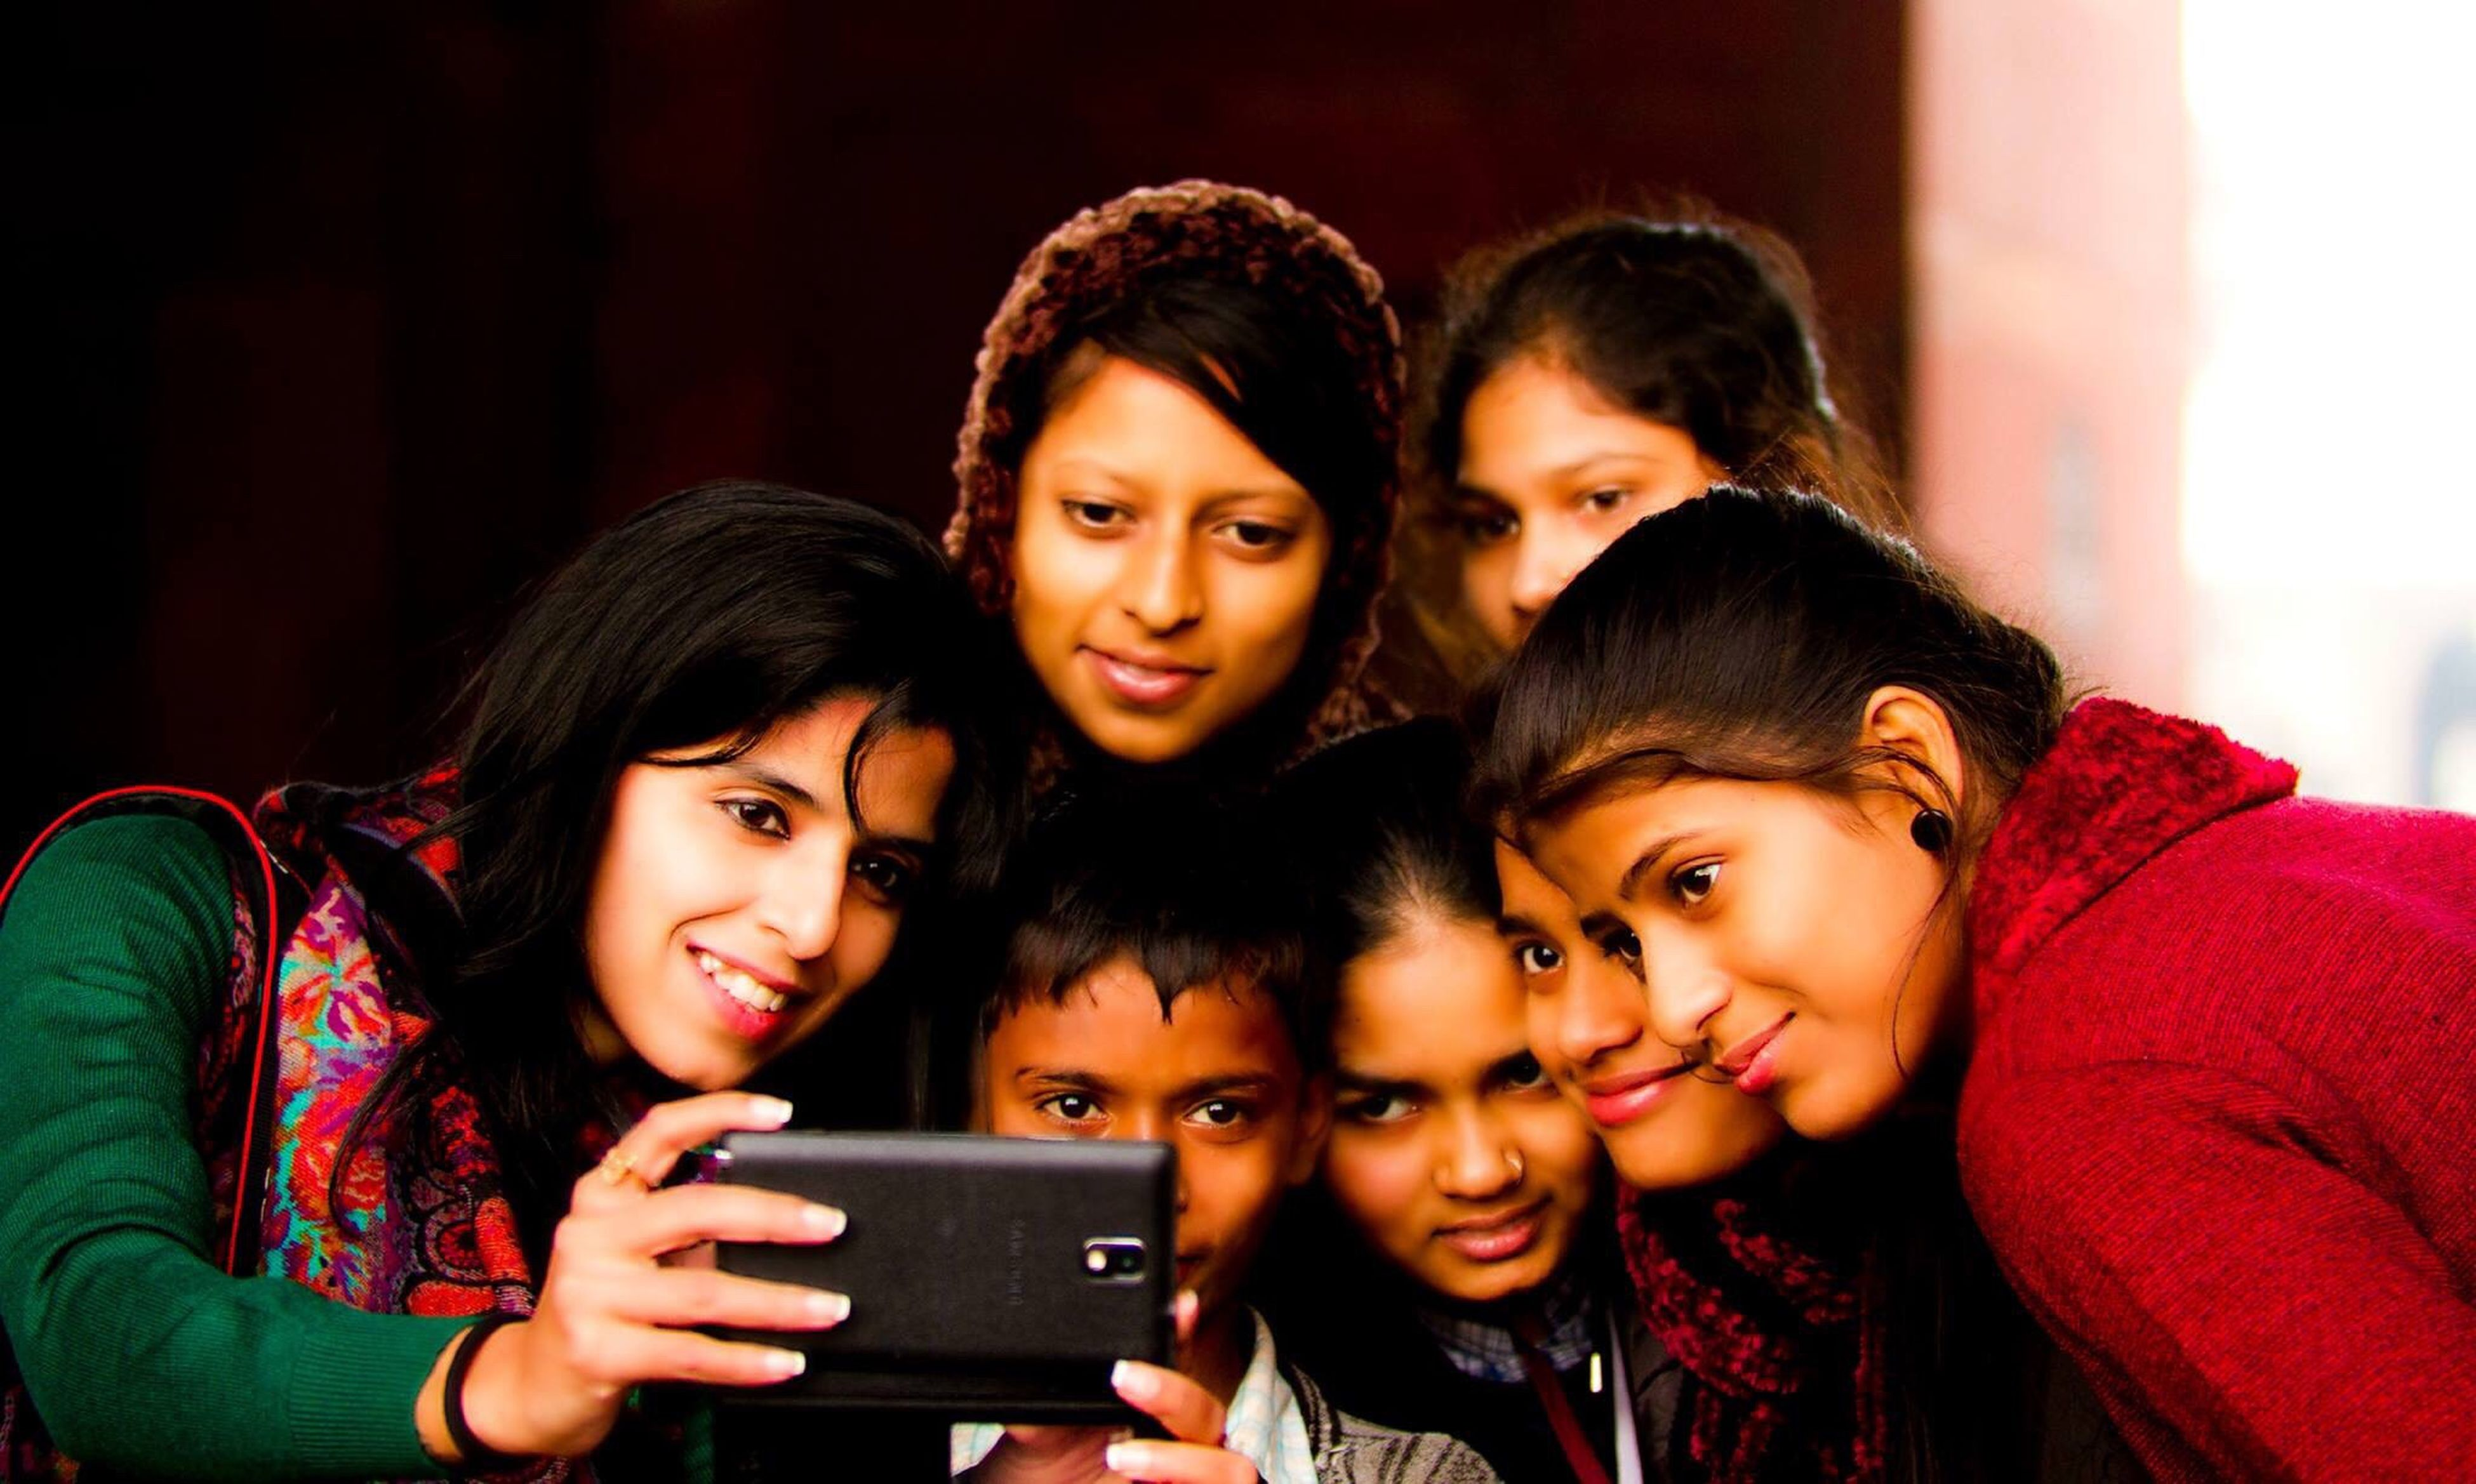 togetherness, bonding, love, person, lifestyles, family, happiness, leisure activity, smiling, portrait, childhood, looking at camera, sister, brother, sibling, friendship, enjoyment, elementary age